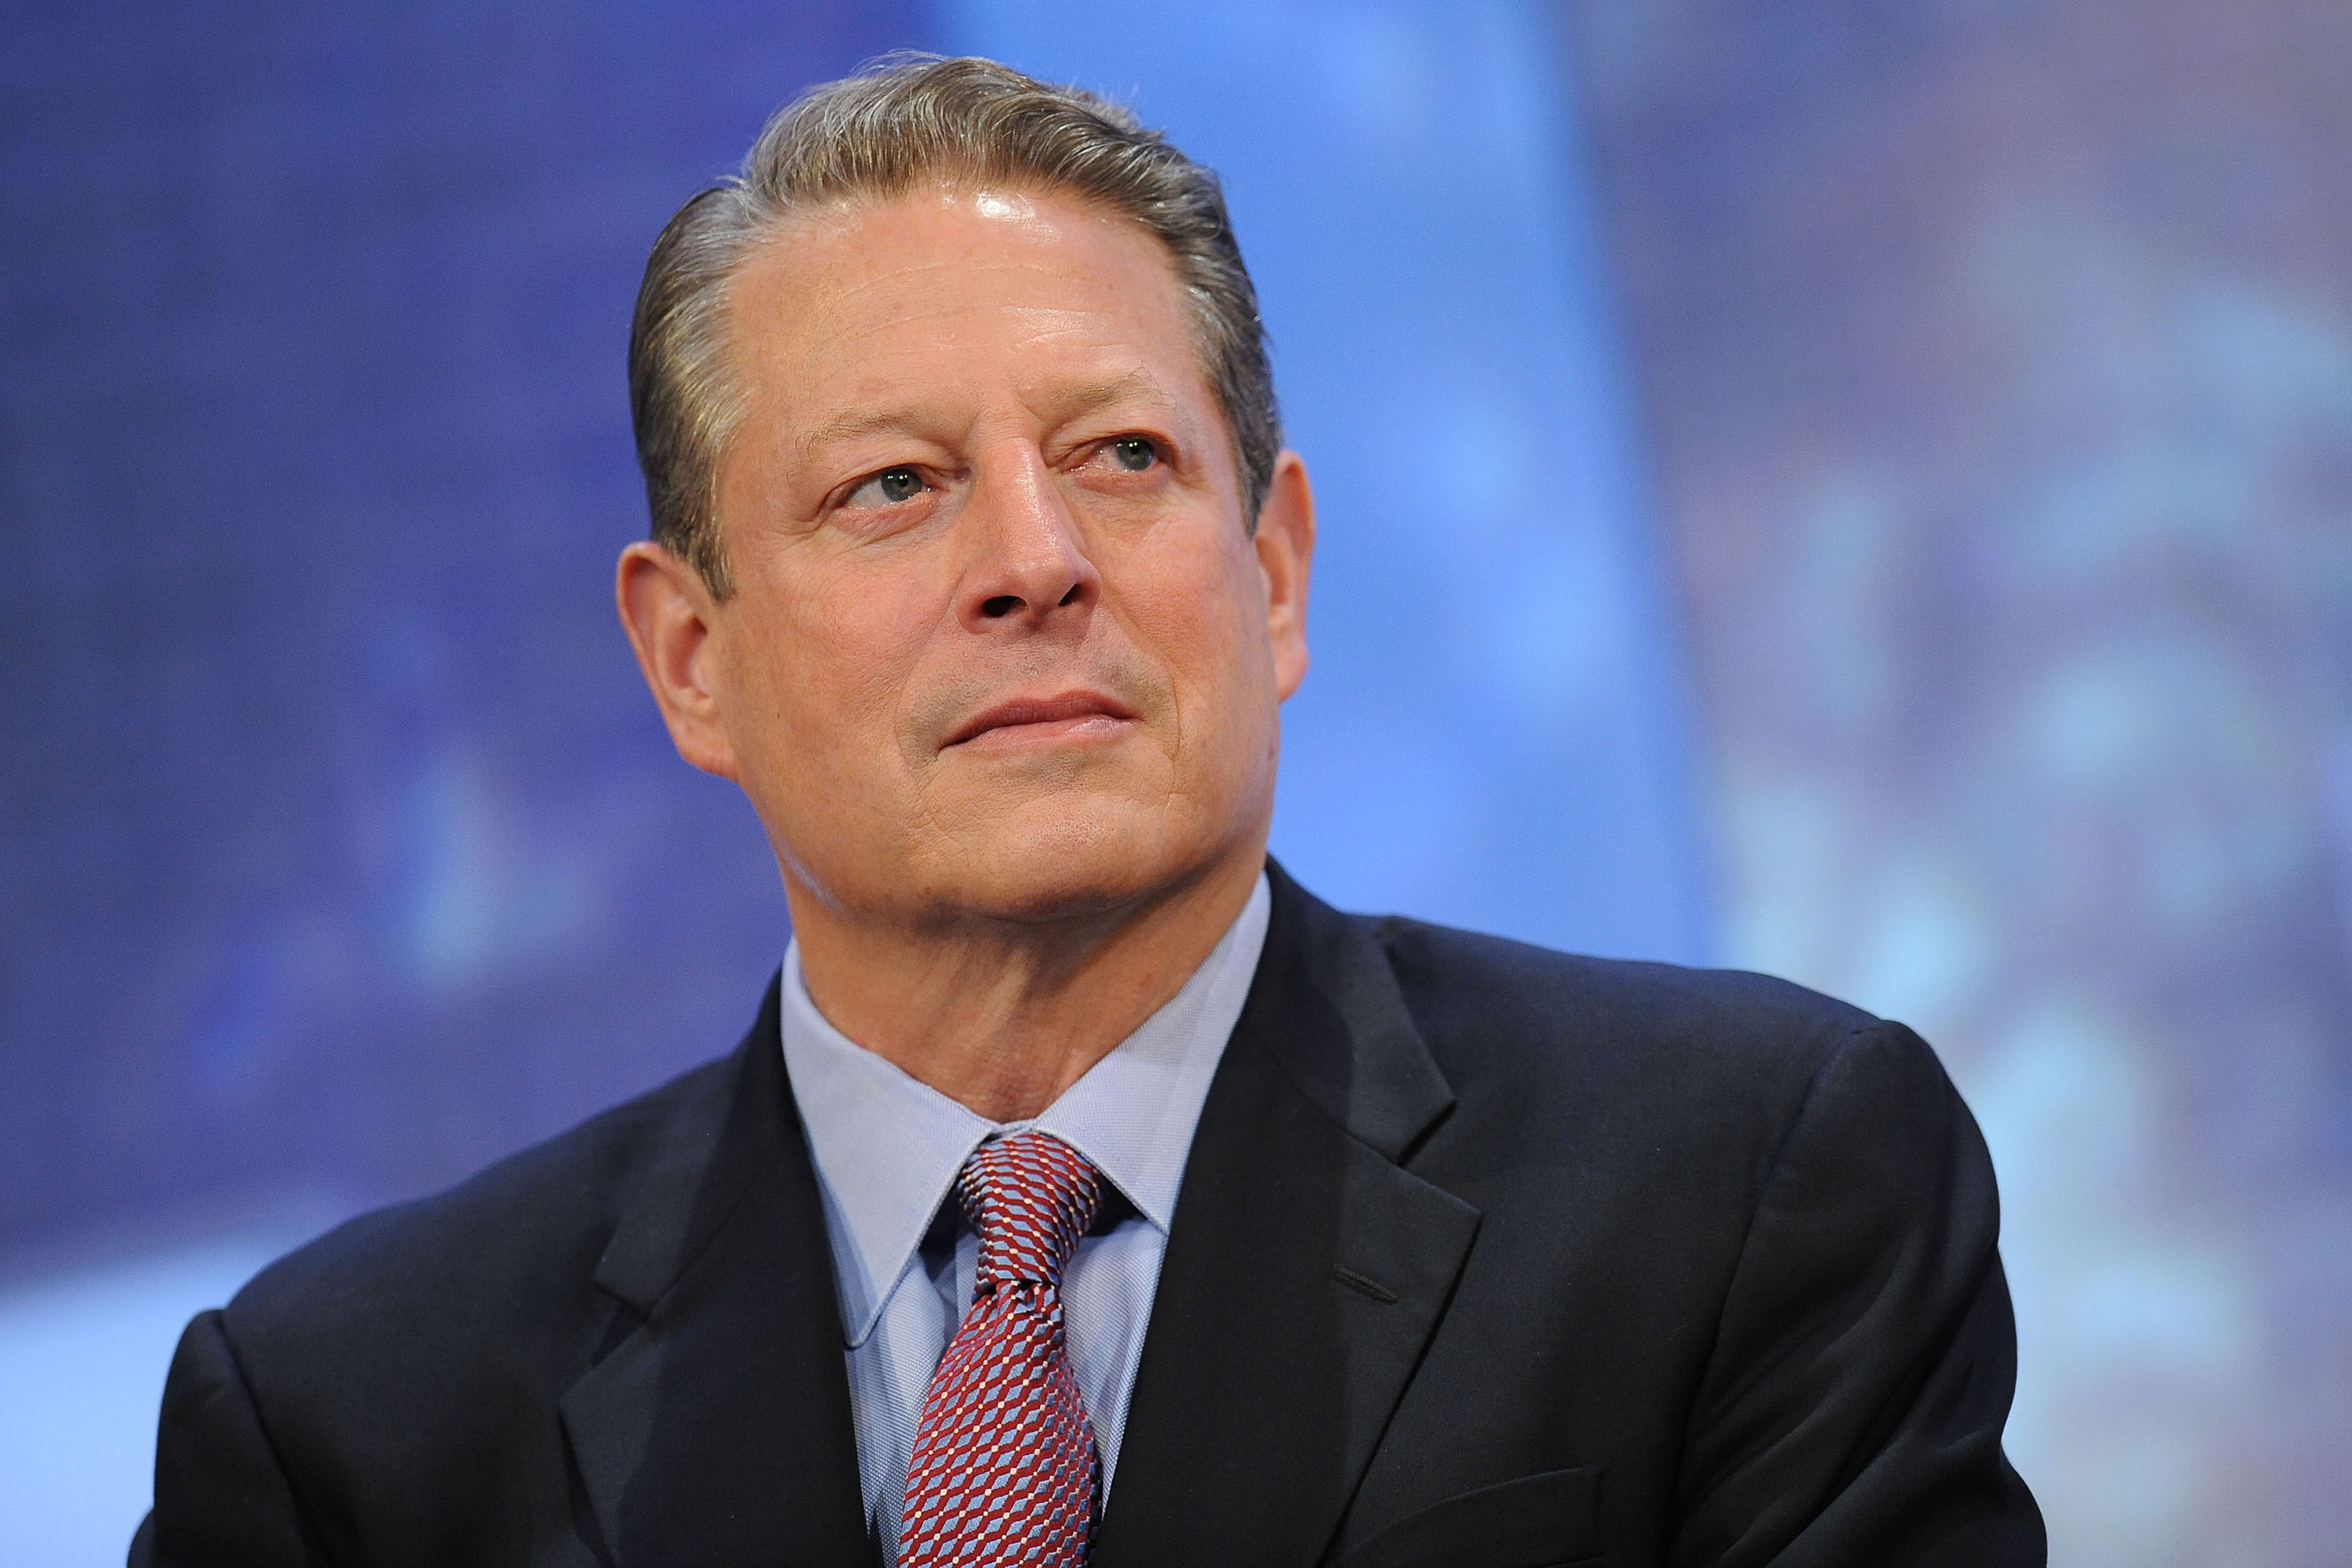 The 69-year old son of father Albert Arnold Gore and mother Pauline LaFon Gore, 187 cm tall Al Gore in 2018 photo